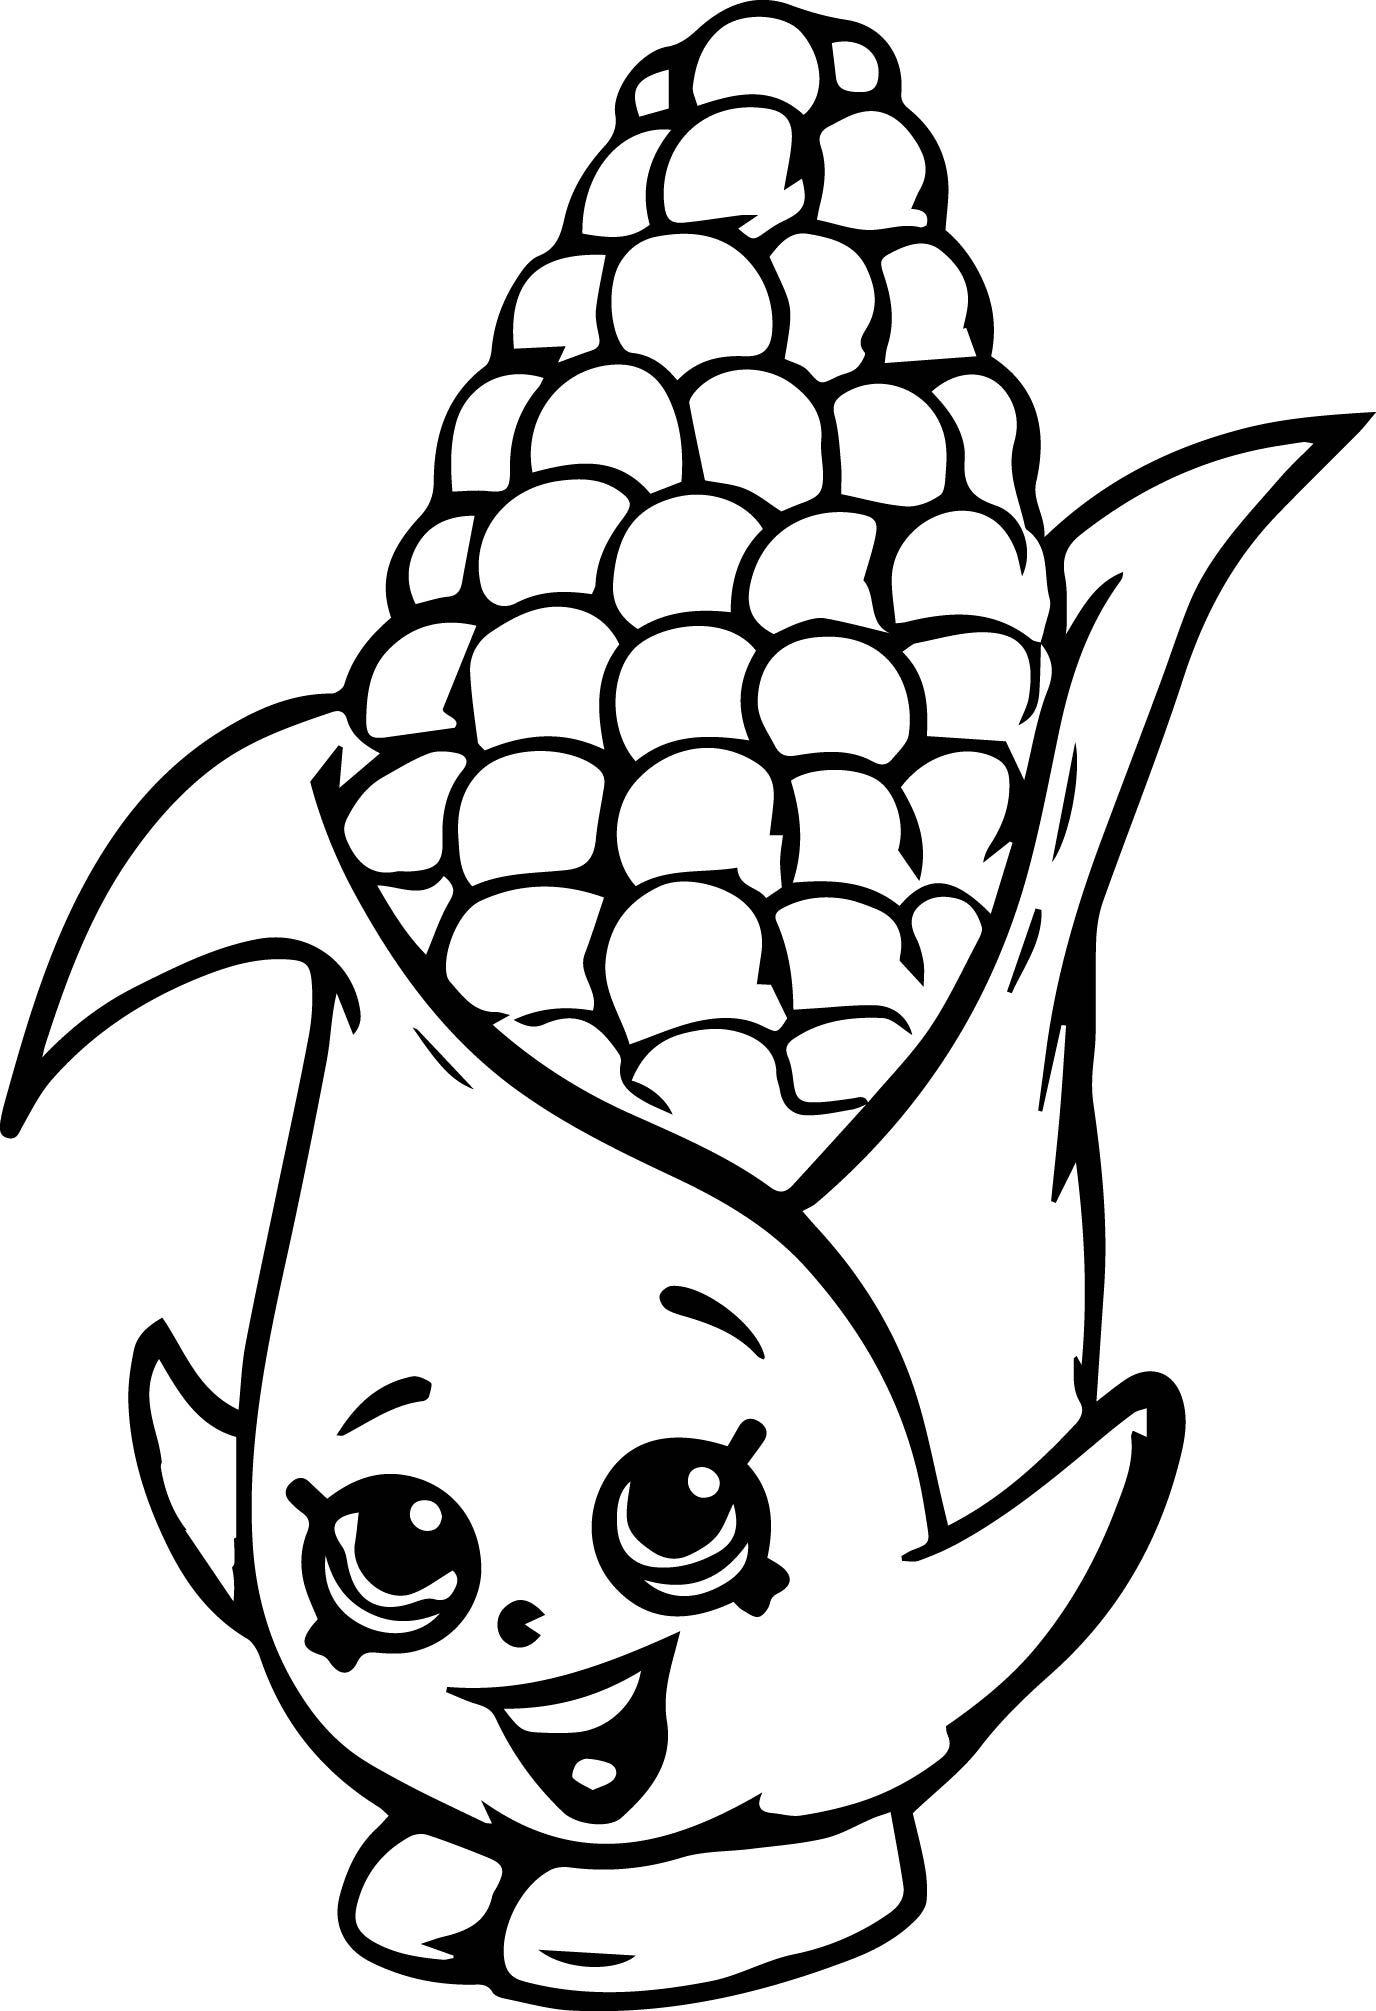 awesome Corny Cob Coloring Page Shopkin coloring pages